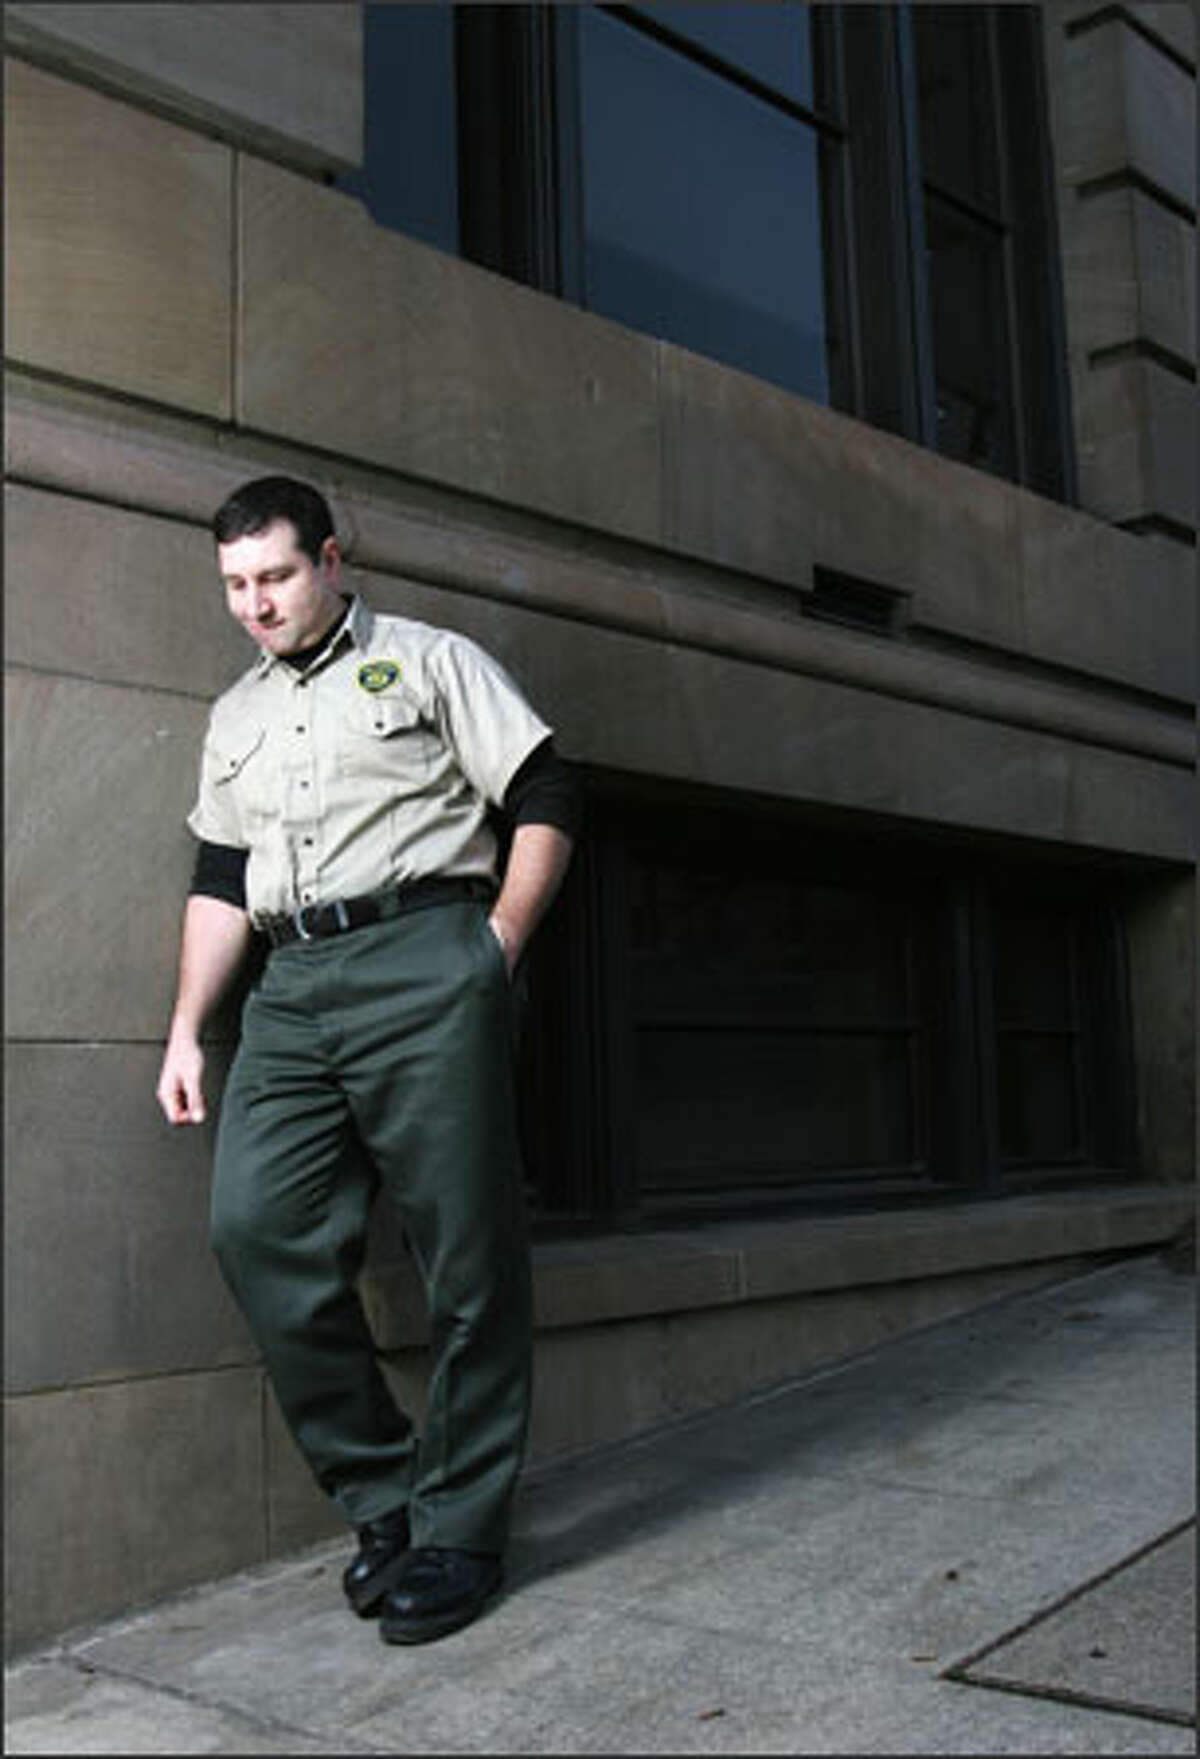 Joseph Pellegrini left the King County Sheriff's Office in 2000, convinced that what he was being asked to do as a rookie deputy by training officers was illegal. He's now a security officer with King County Facilities.